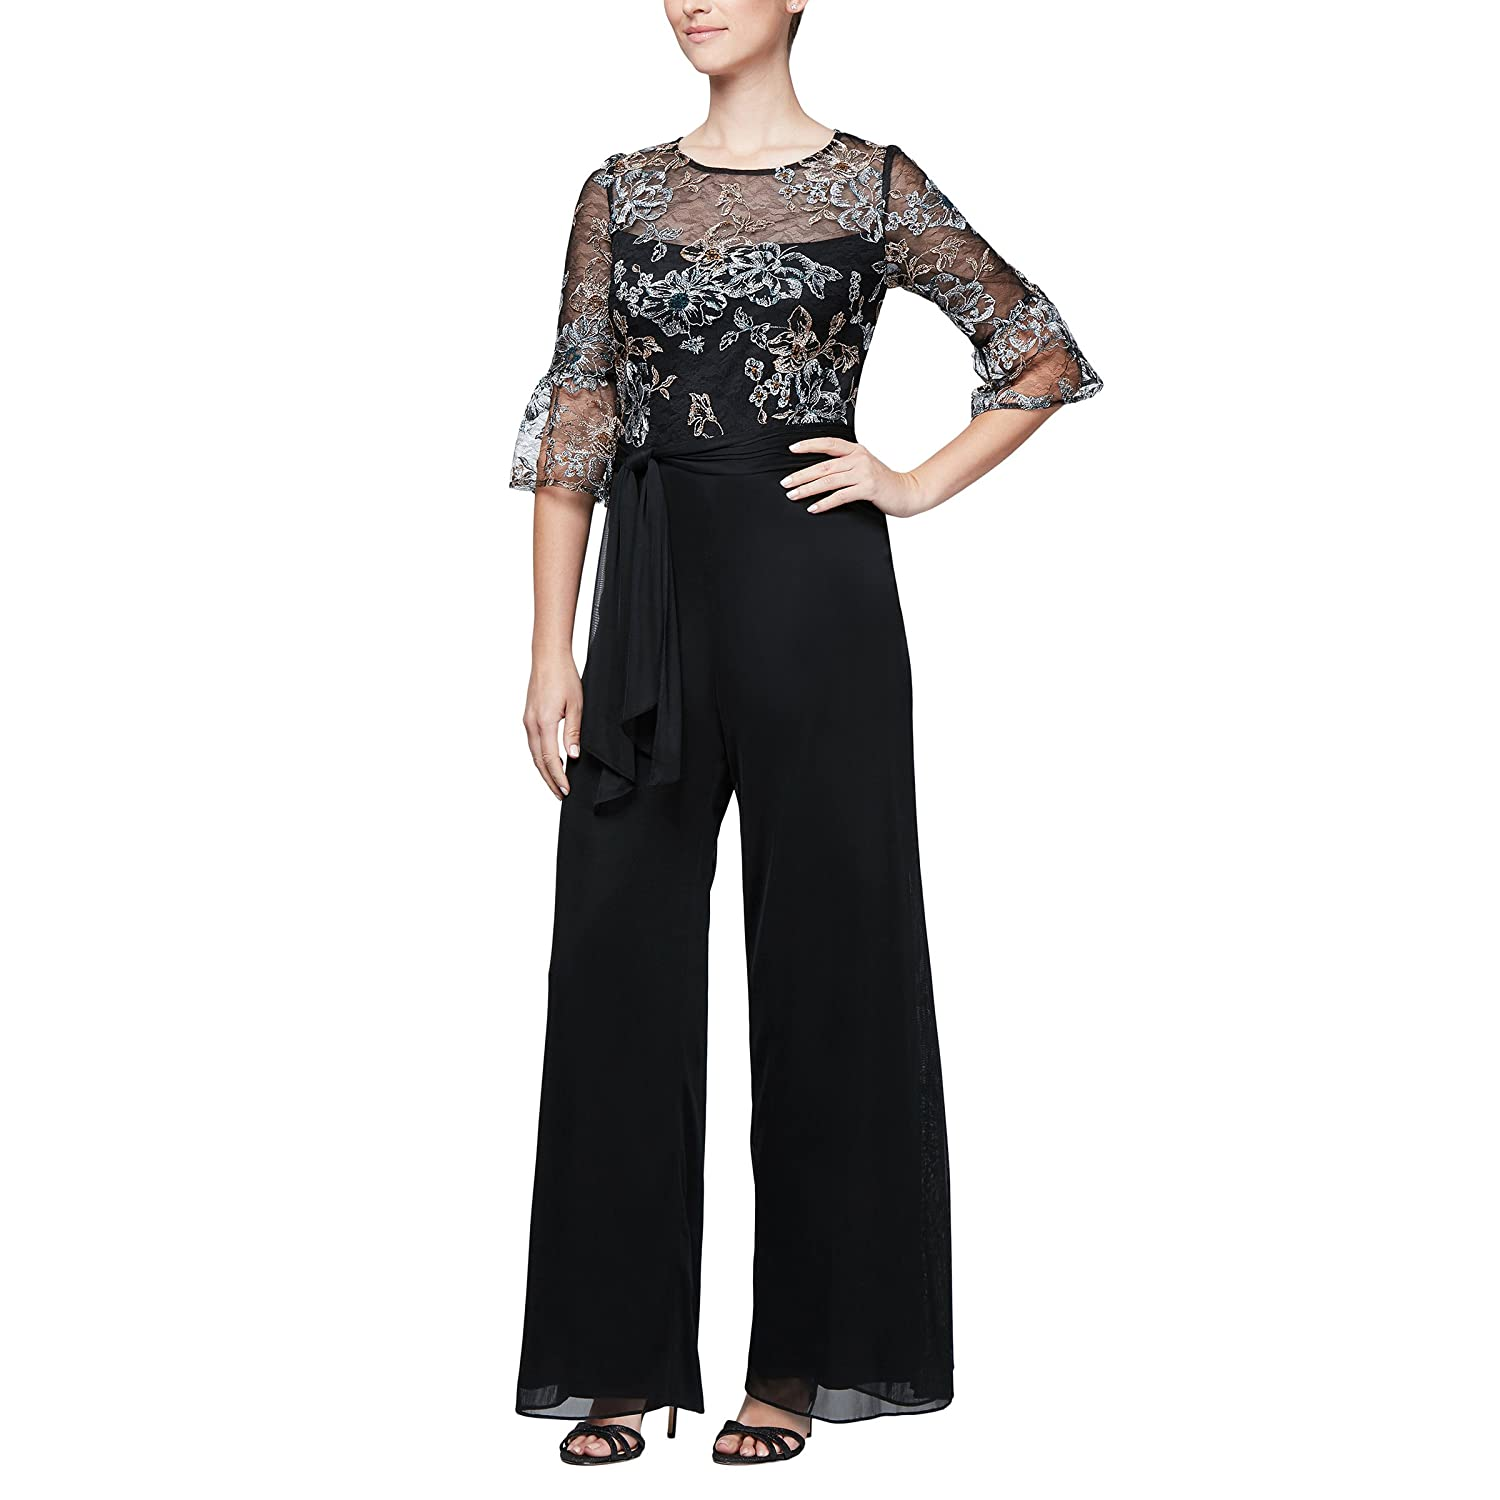 Vintage High Waisted Trousers, Sailor Pants, Jeans Alex Evenings Womens Embroidered Jumpsuit Illusion Bell Sleeves $229.00 AT vintagedancer.com